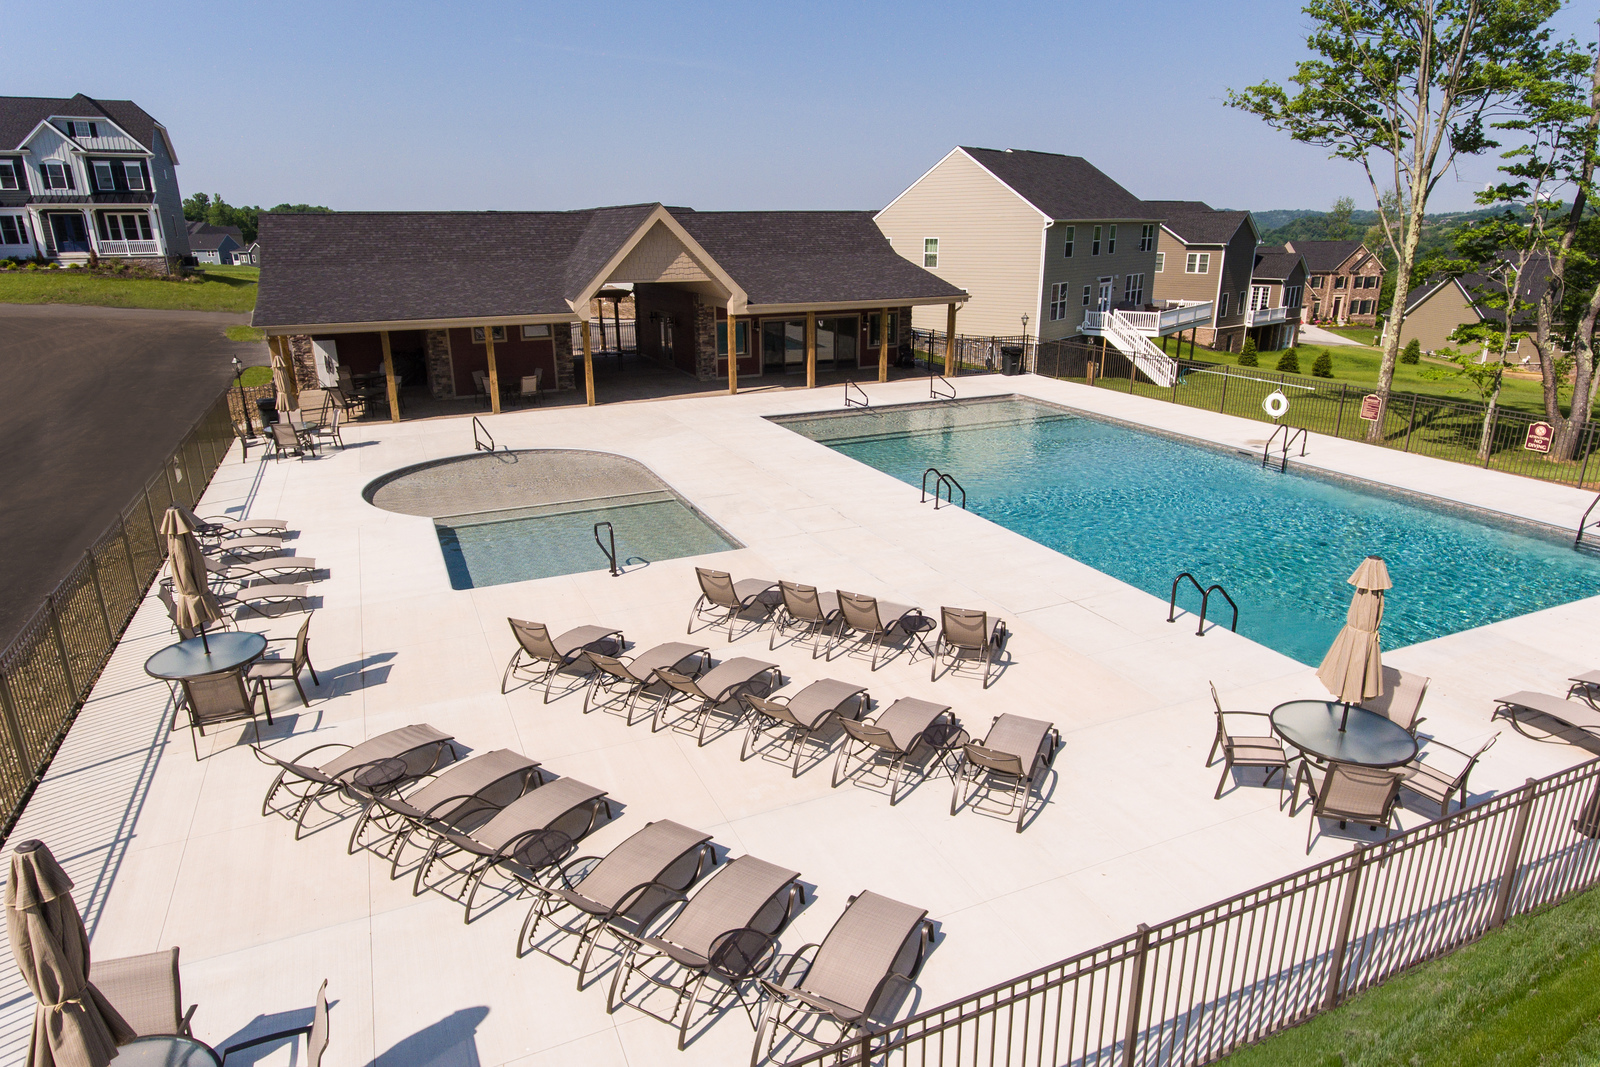 Schedule a tour of this beautiful community, featuring a pool and clubhouse, today!